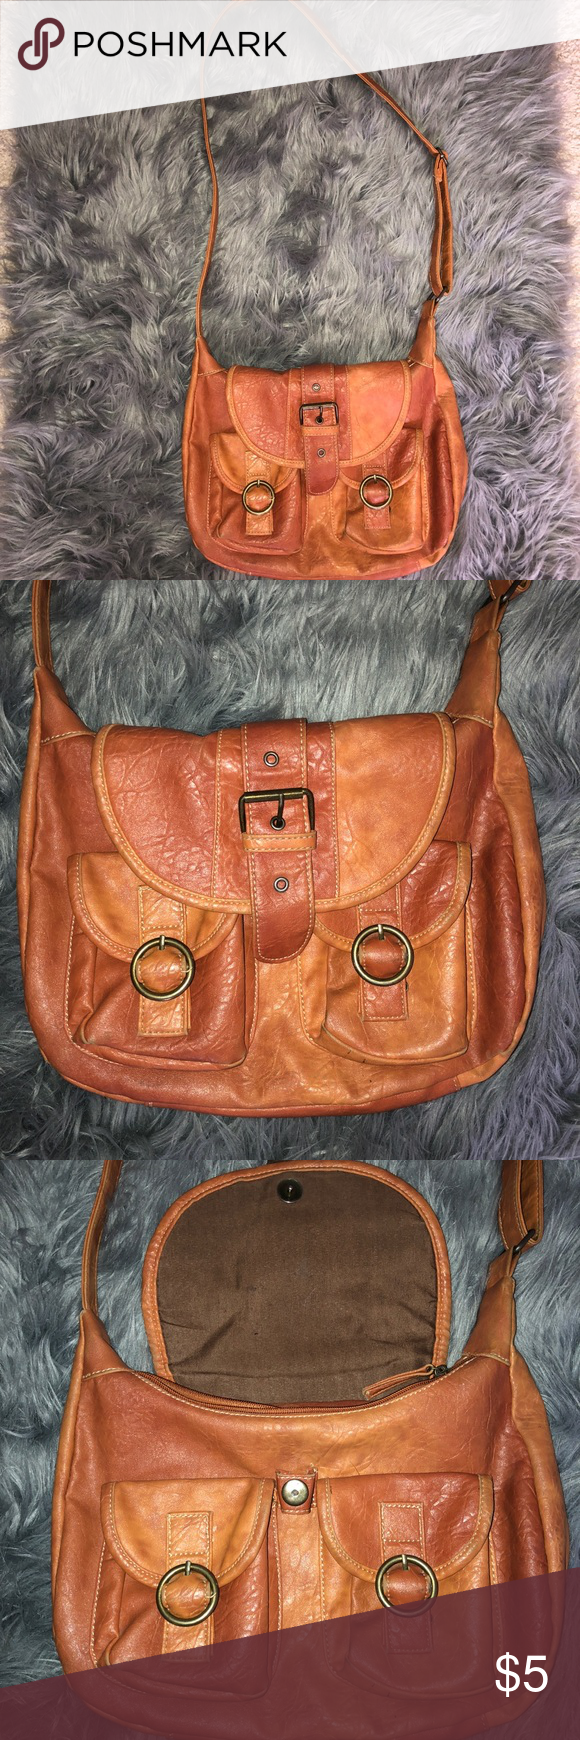 False Leather Bag - comes as it is - bought from Poshmark - conditions  good  household  » smoke free » pet free   always open to offers. no lowballers    ... 189b85764f